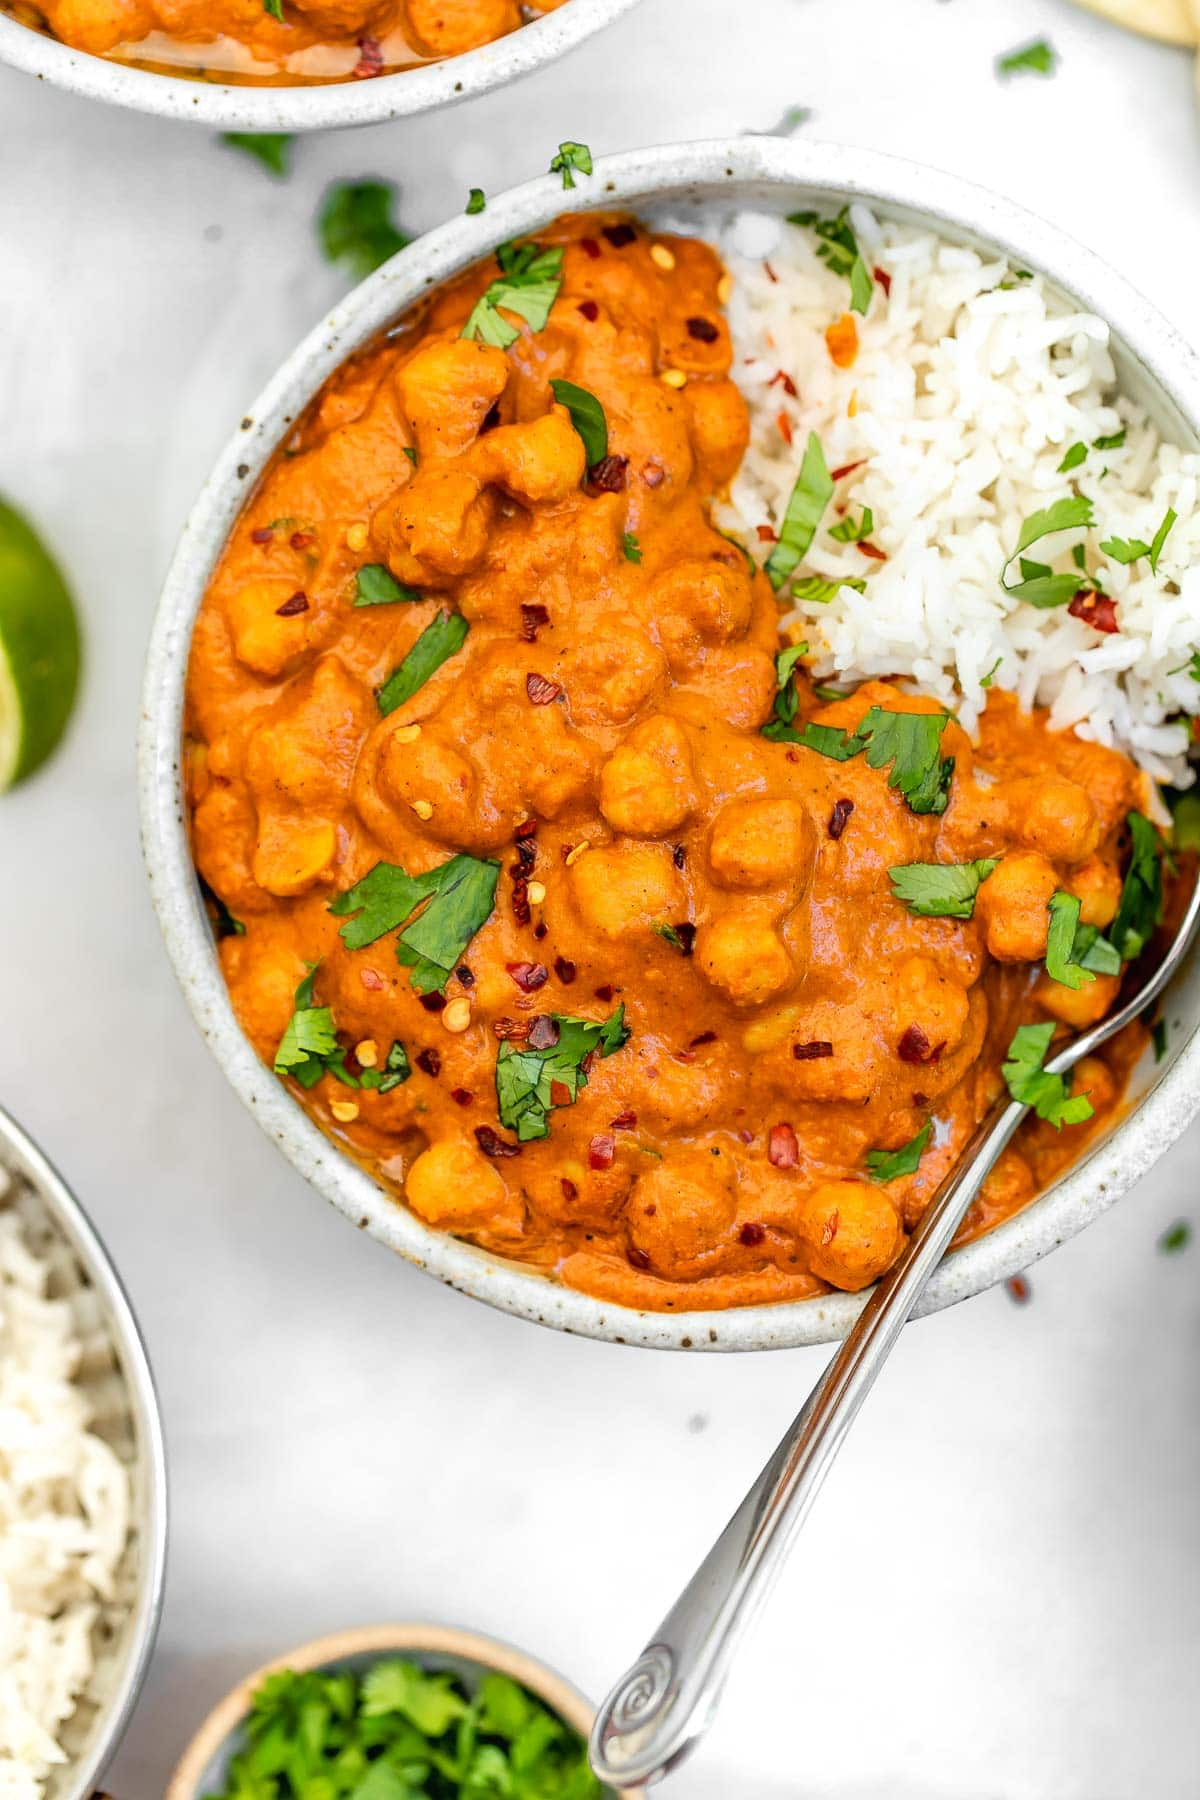 Overhead shot of the chickpea masala with cilantro and red pepper flakes.